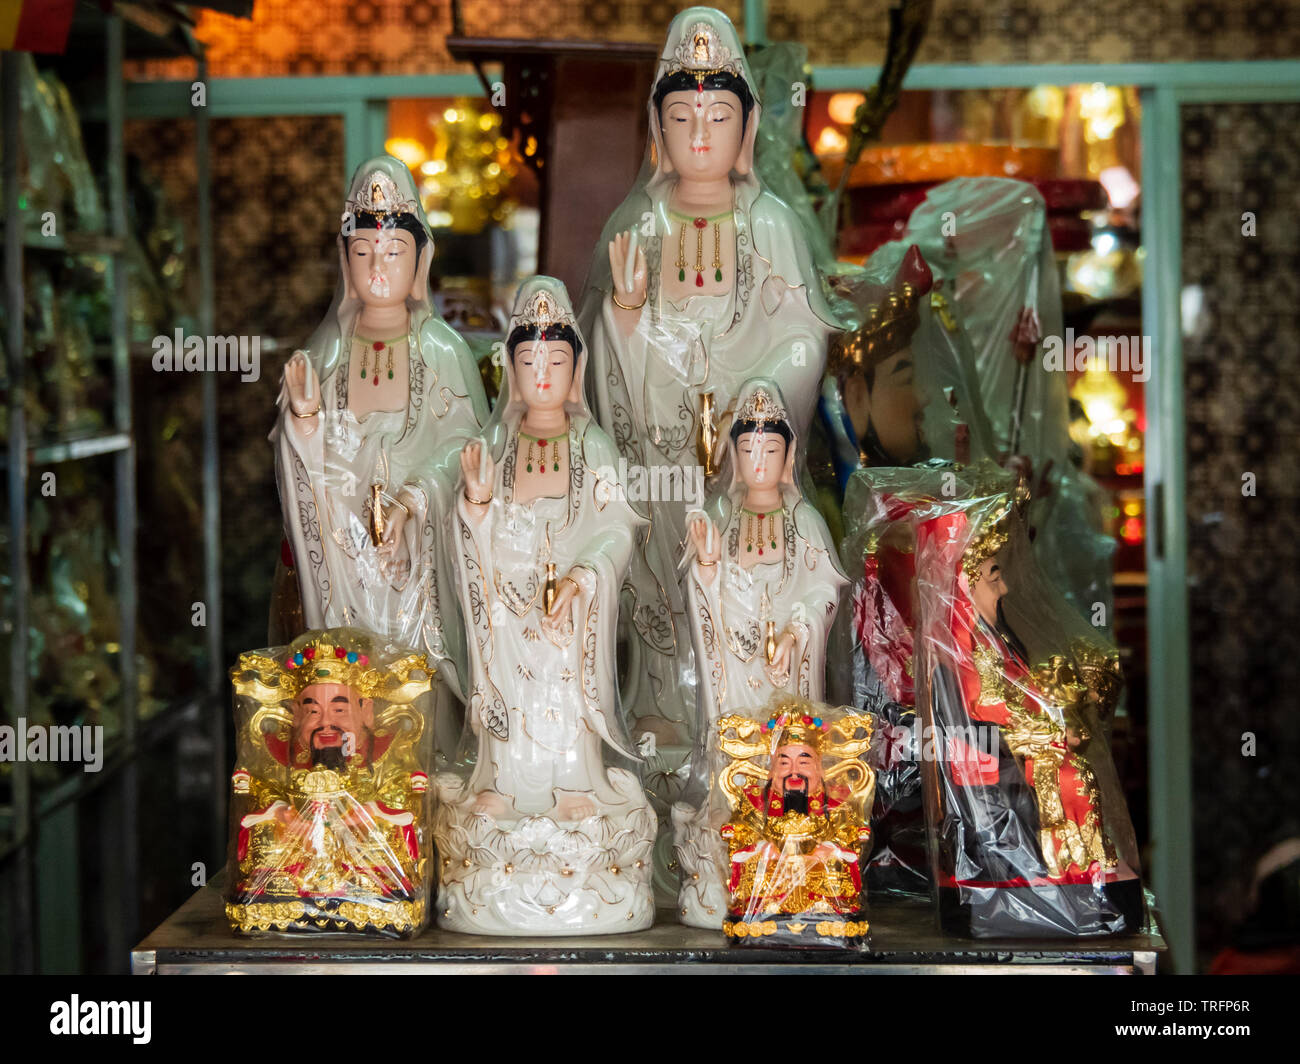 Figurines of the Goddess of Mercy, Kwan Yin / Kuan Yin and the God of Fortune, Cai Shen, at a Taoist / Daoist prayer items store - Stock Image